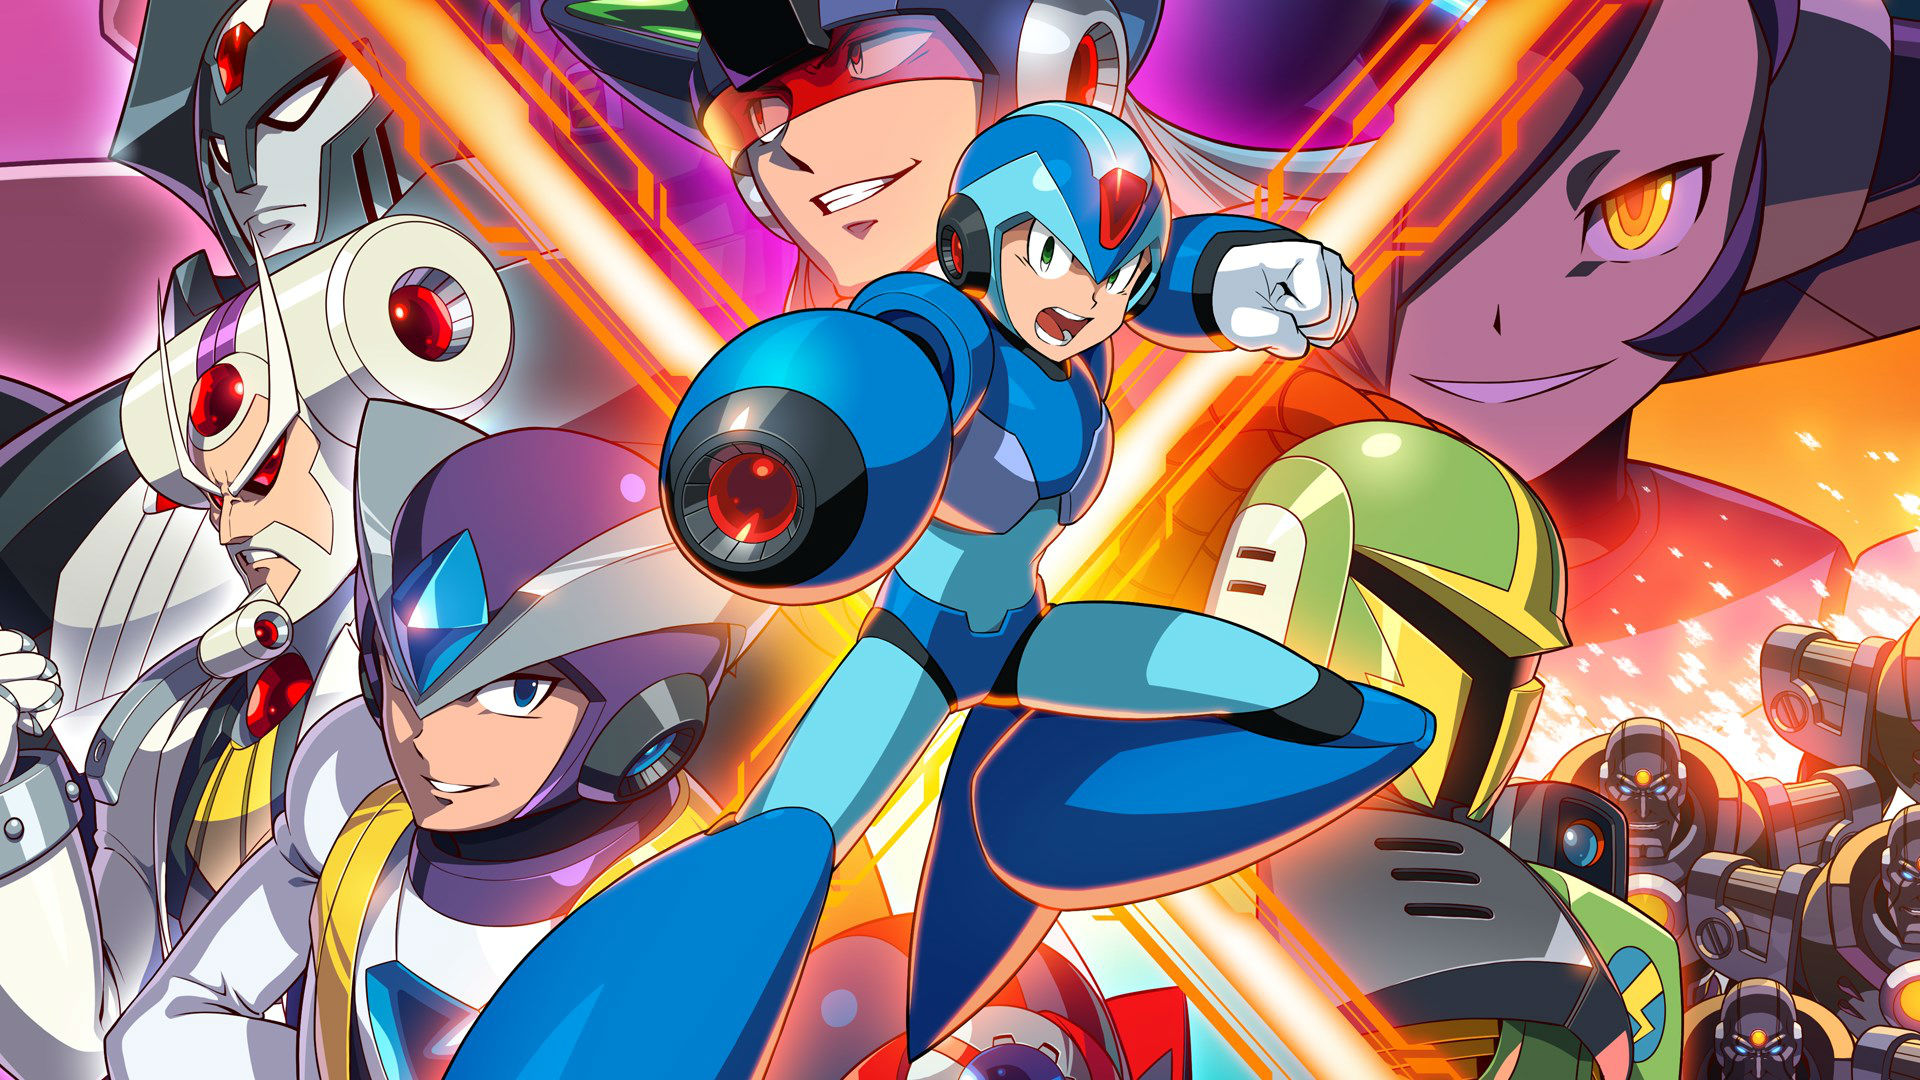 The Mega Man X Legacy Collections join Mega Man 11 in the million-seller club